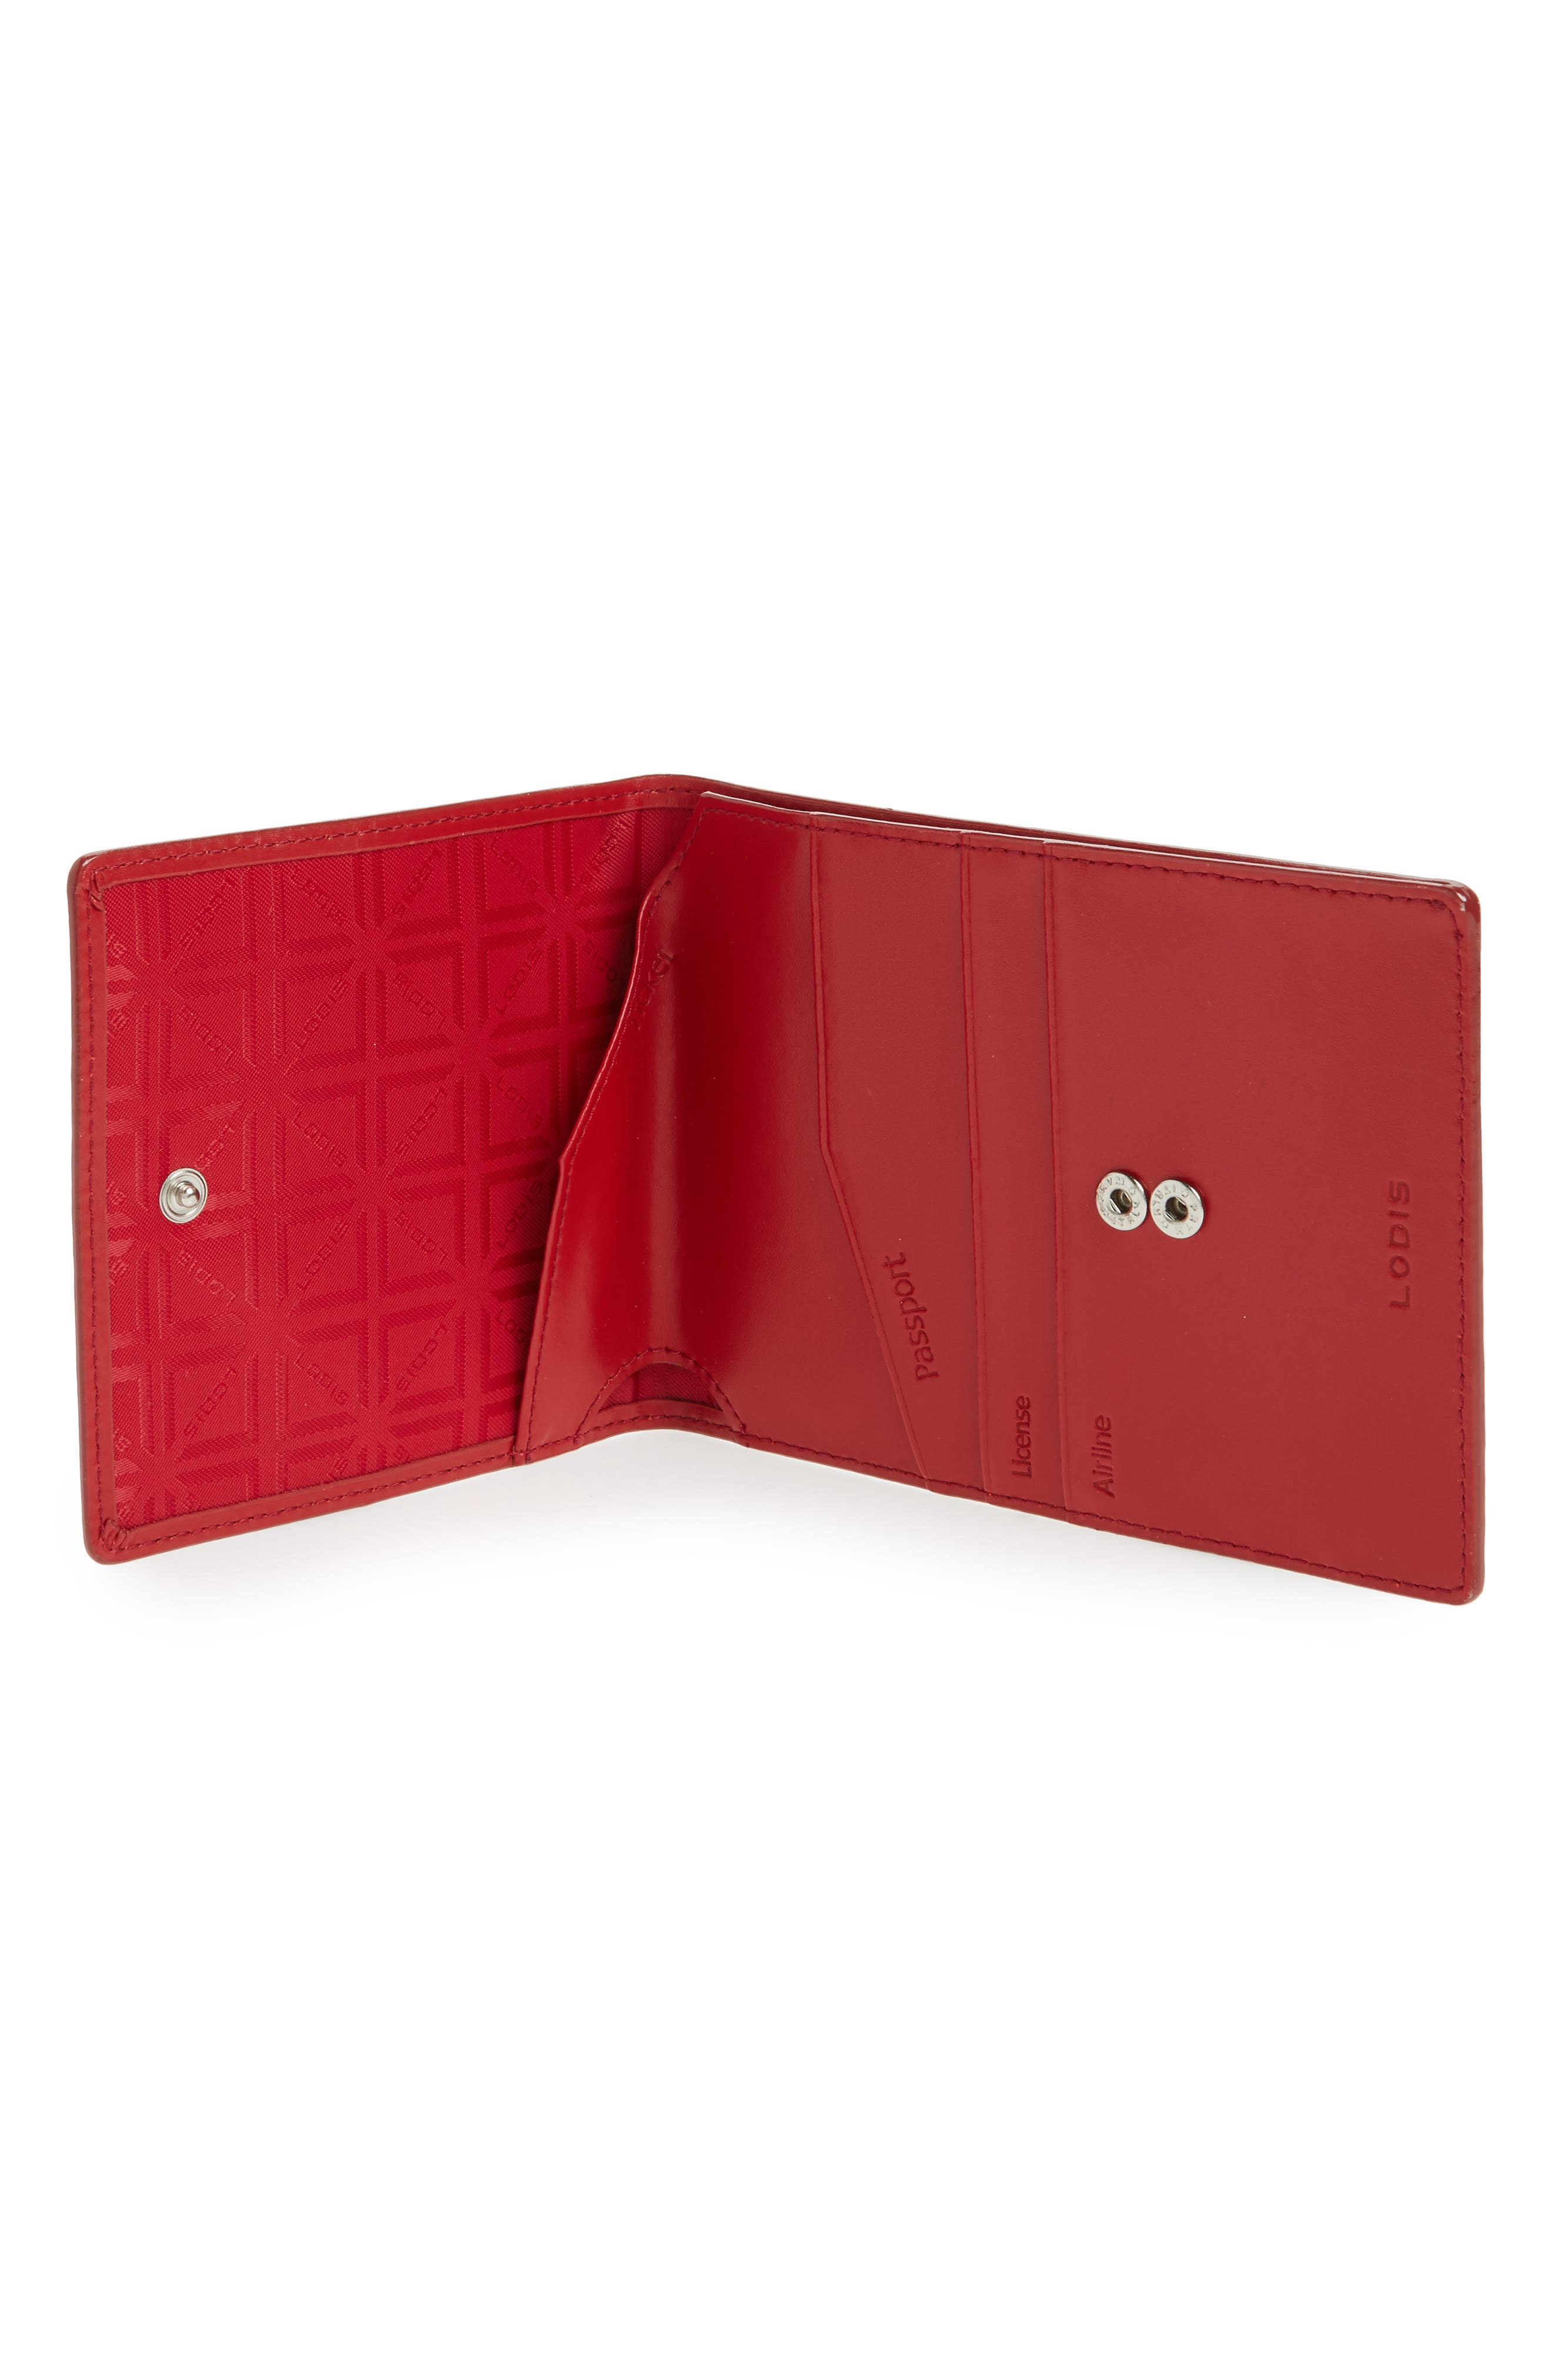 LODIS Audrey Under Lock & Key Skyler Leather Passport Wallet,                             Alternate thumbnail 2, color,                             001